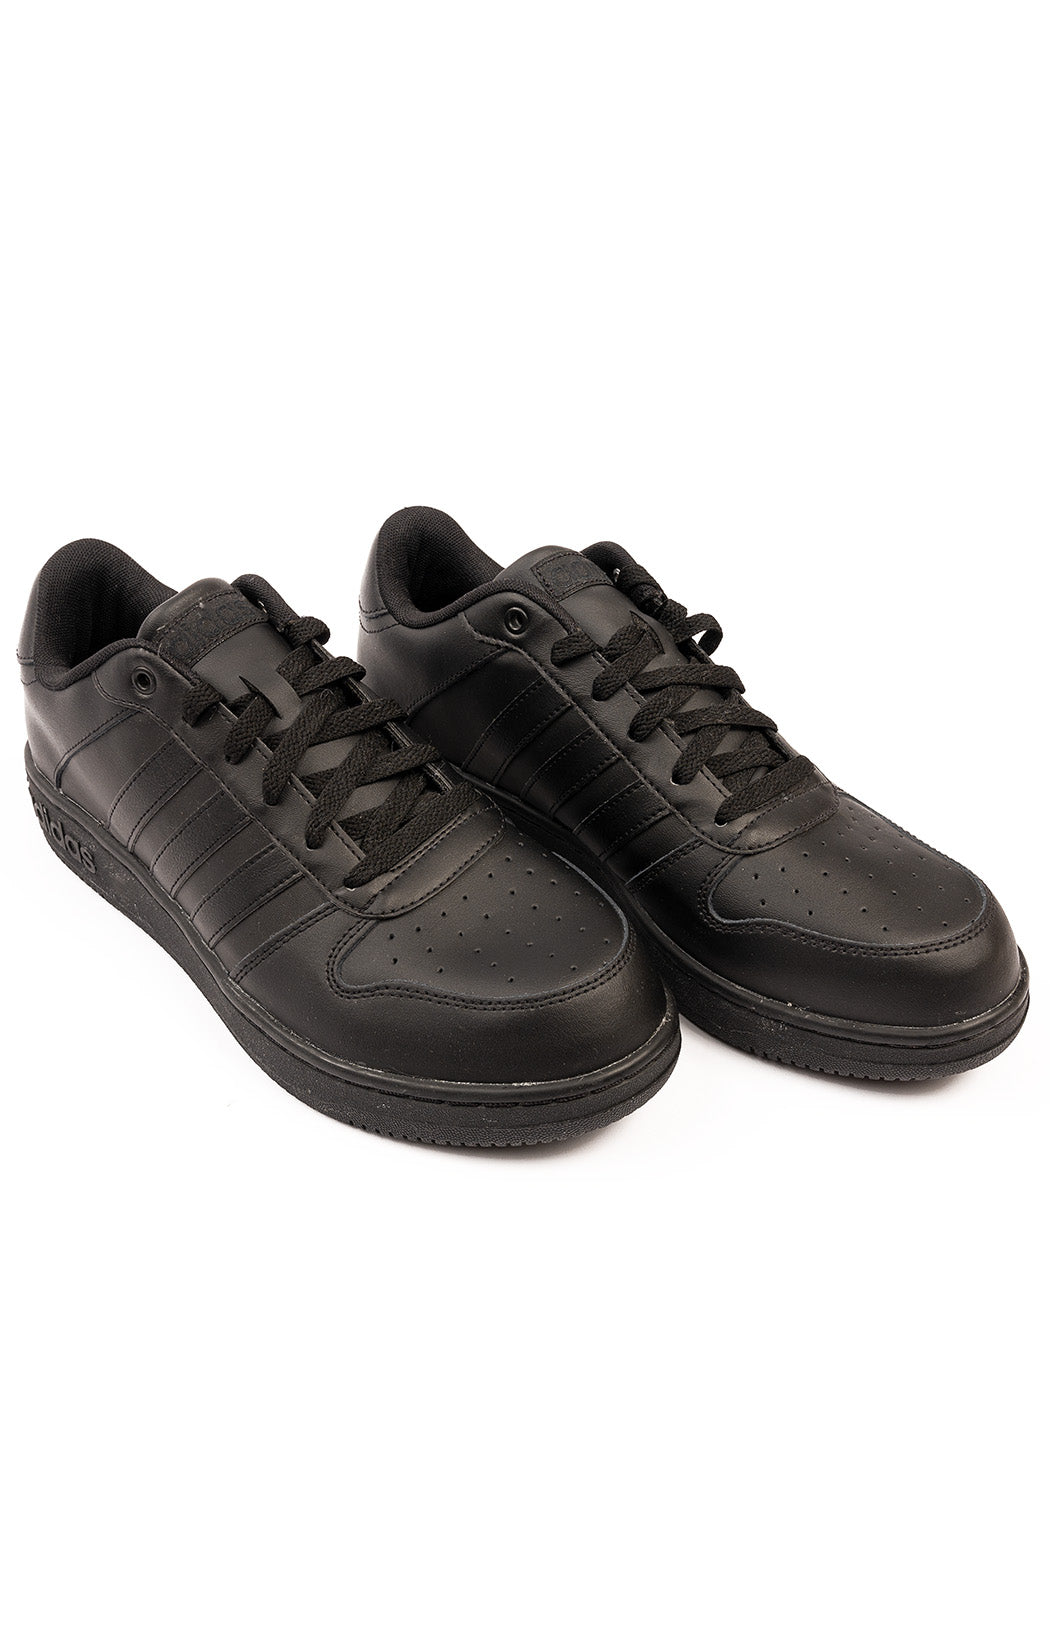 Black leather lace up tennis shoes